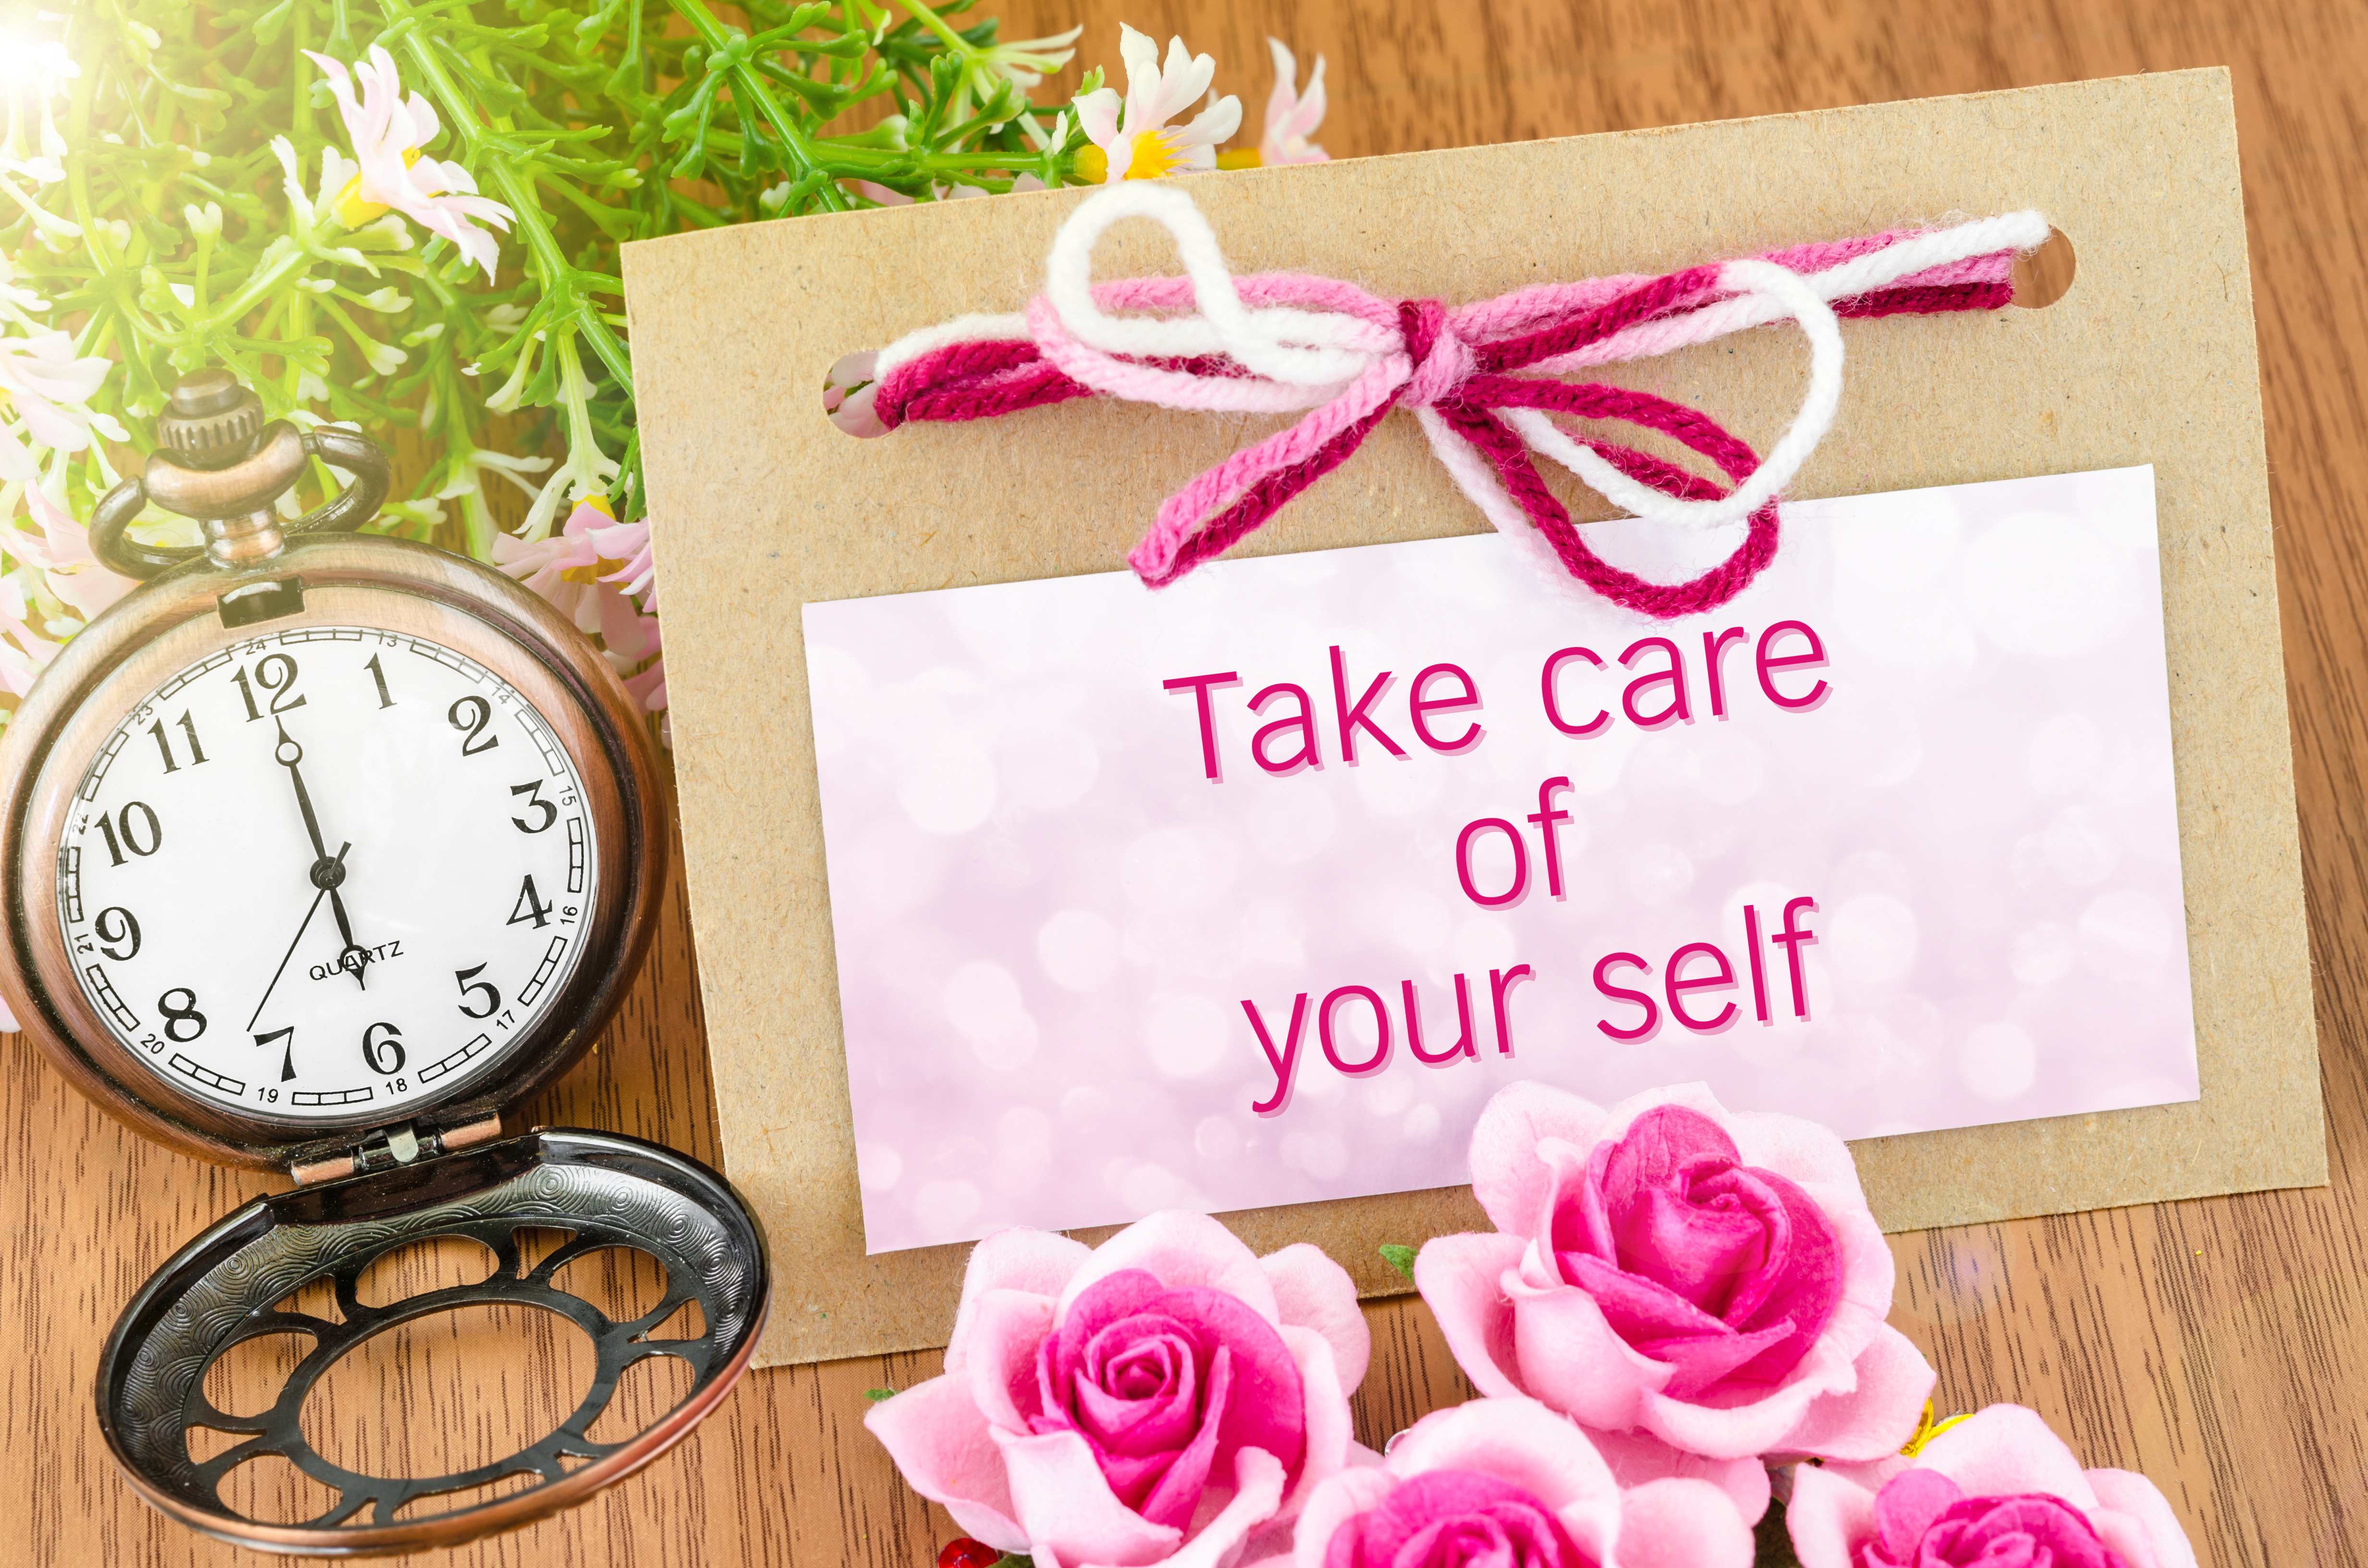 michelle_soares_take_care_of_yourself